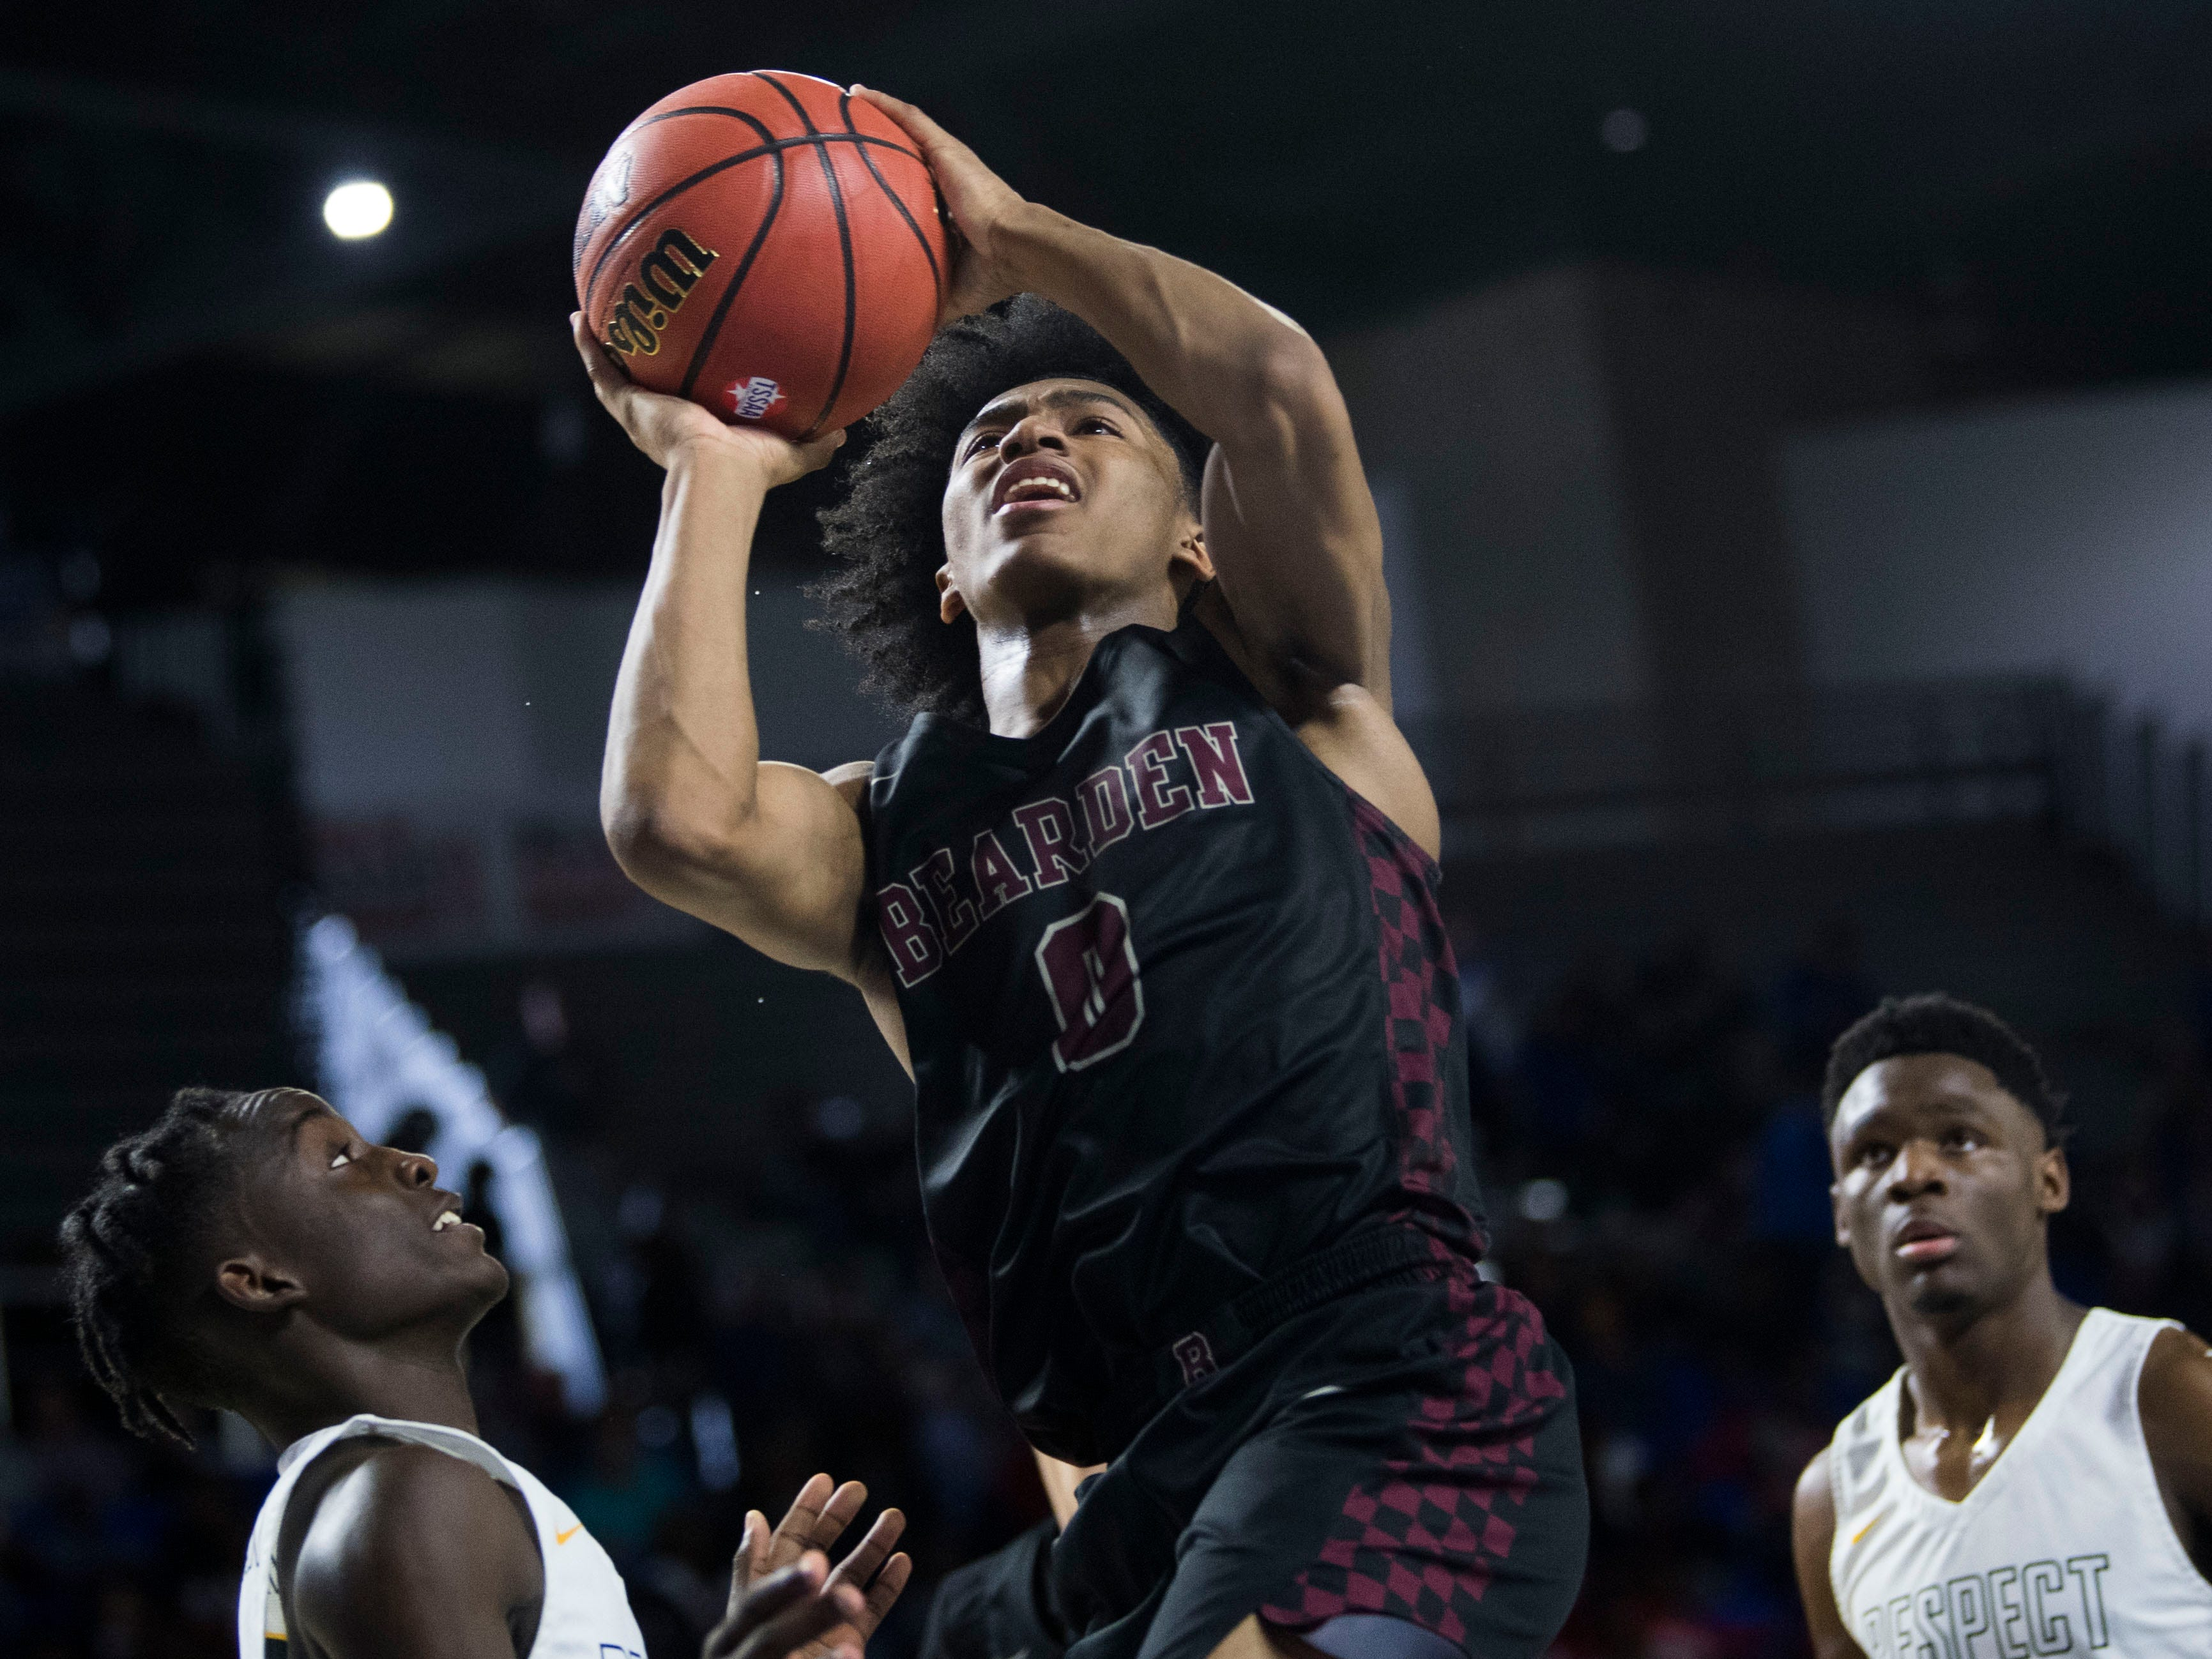 Bearden's Ques Glover (0) takes a shot during a TSSAA AAA state semifinal game between Whitehaven and Bearden at the Murphy Center in Murfreesboro, Friday, March 15, 2019. Bearden defeated Whitehaven 76-60.